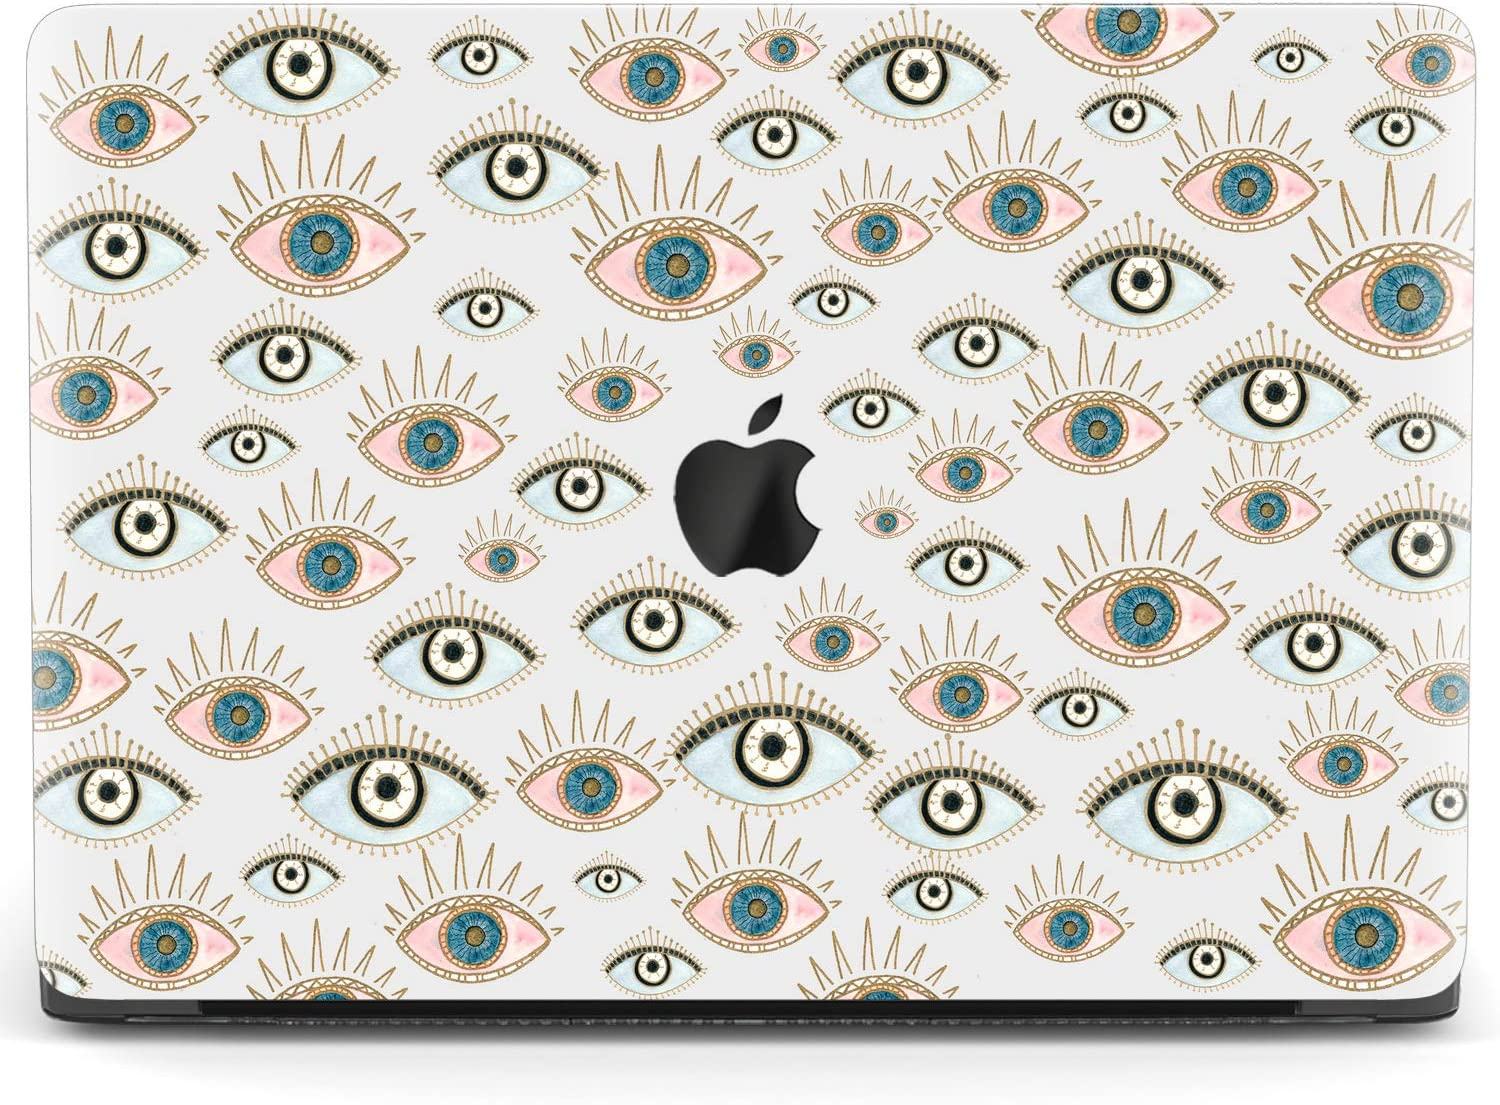 MacBook Pro Case Seamless Abstract Sea Background Sailboats On A Vector MacBook Retina 12 A1534 Plastic Case Keyboard Cover /& Screen Protector /& Key